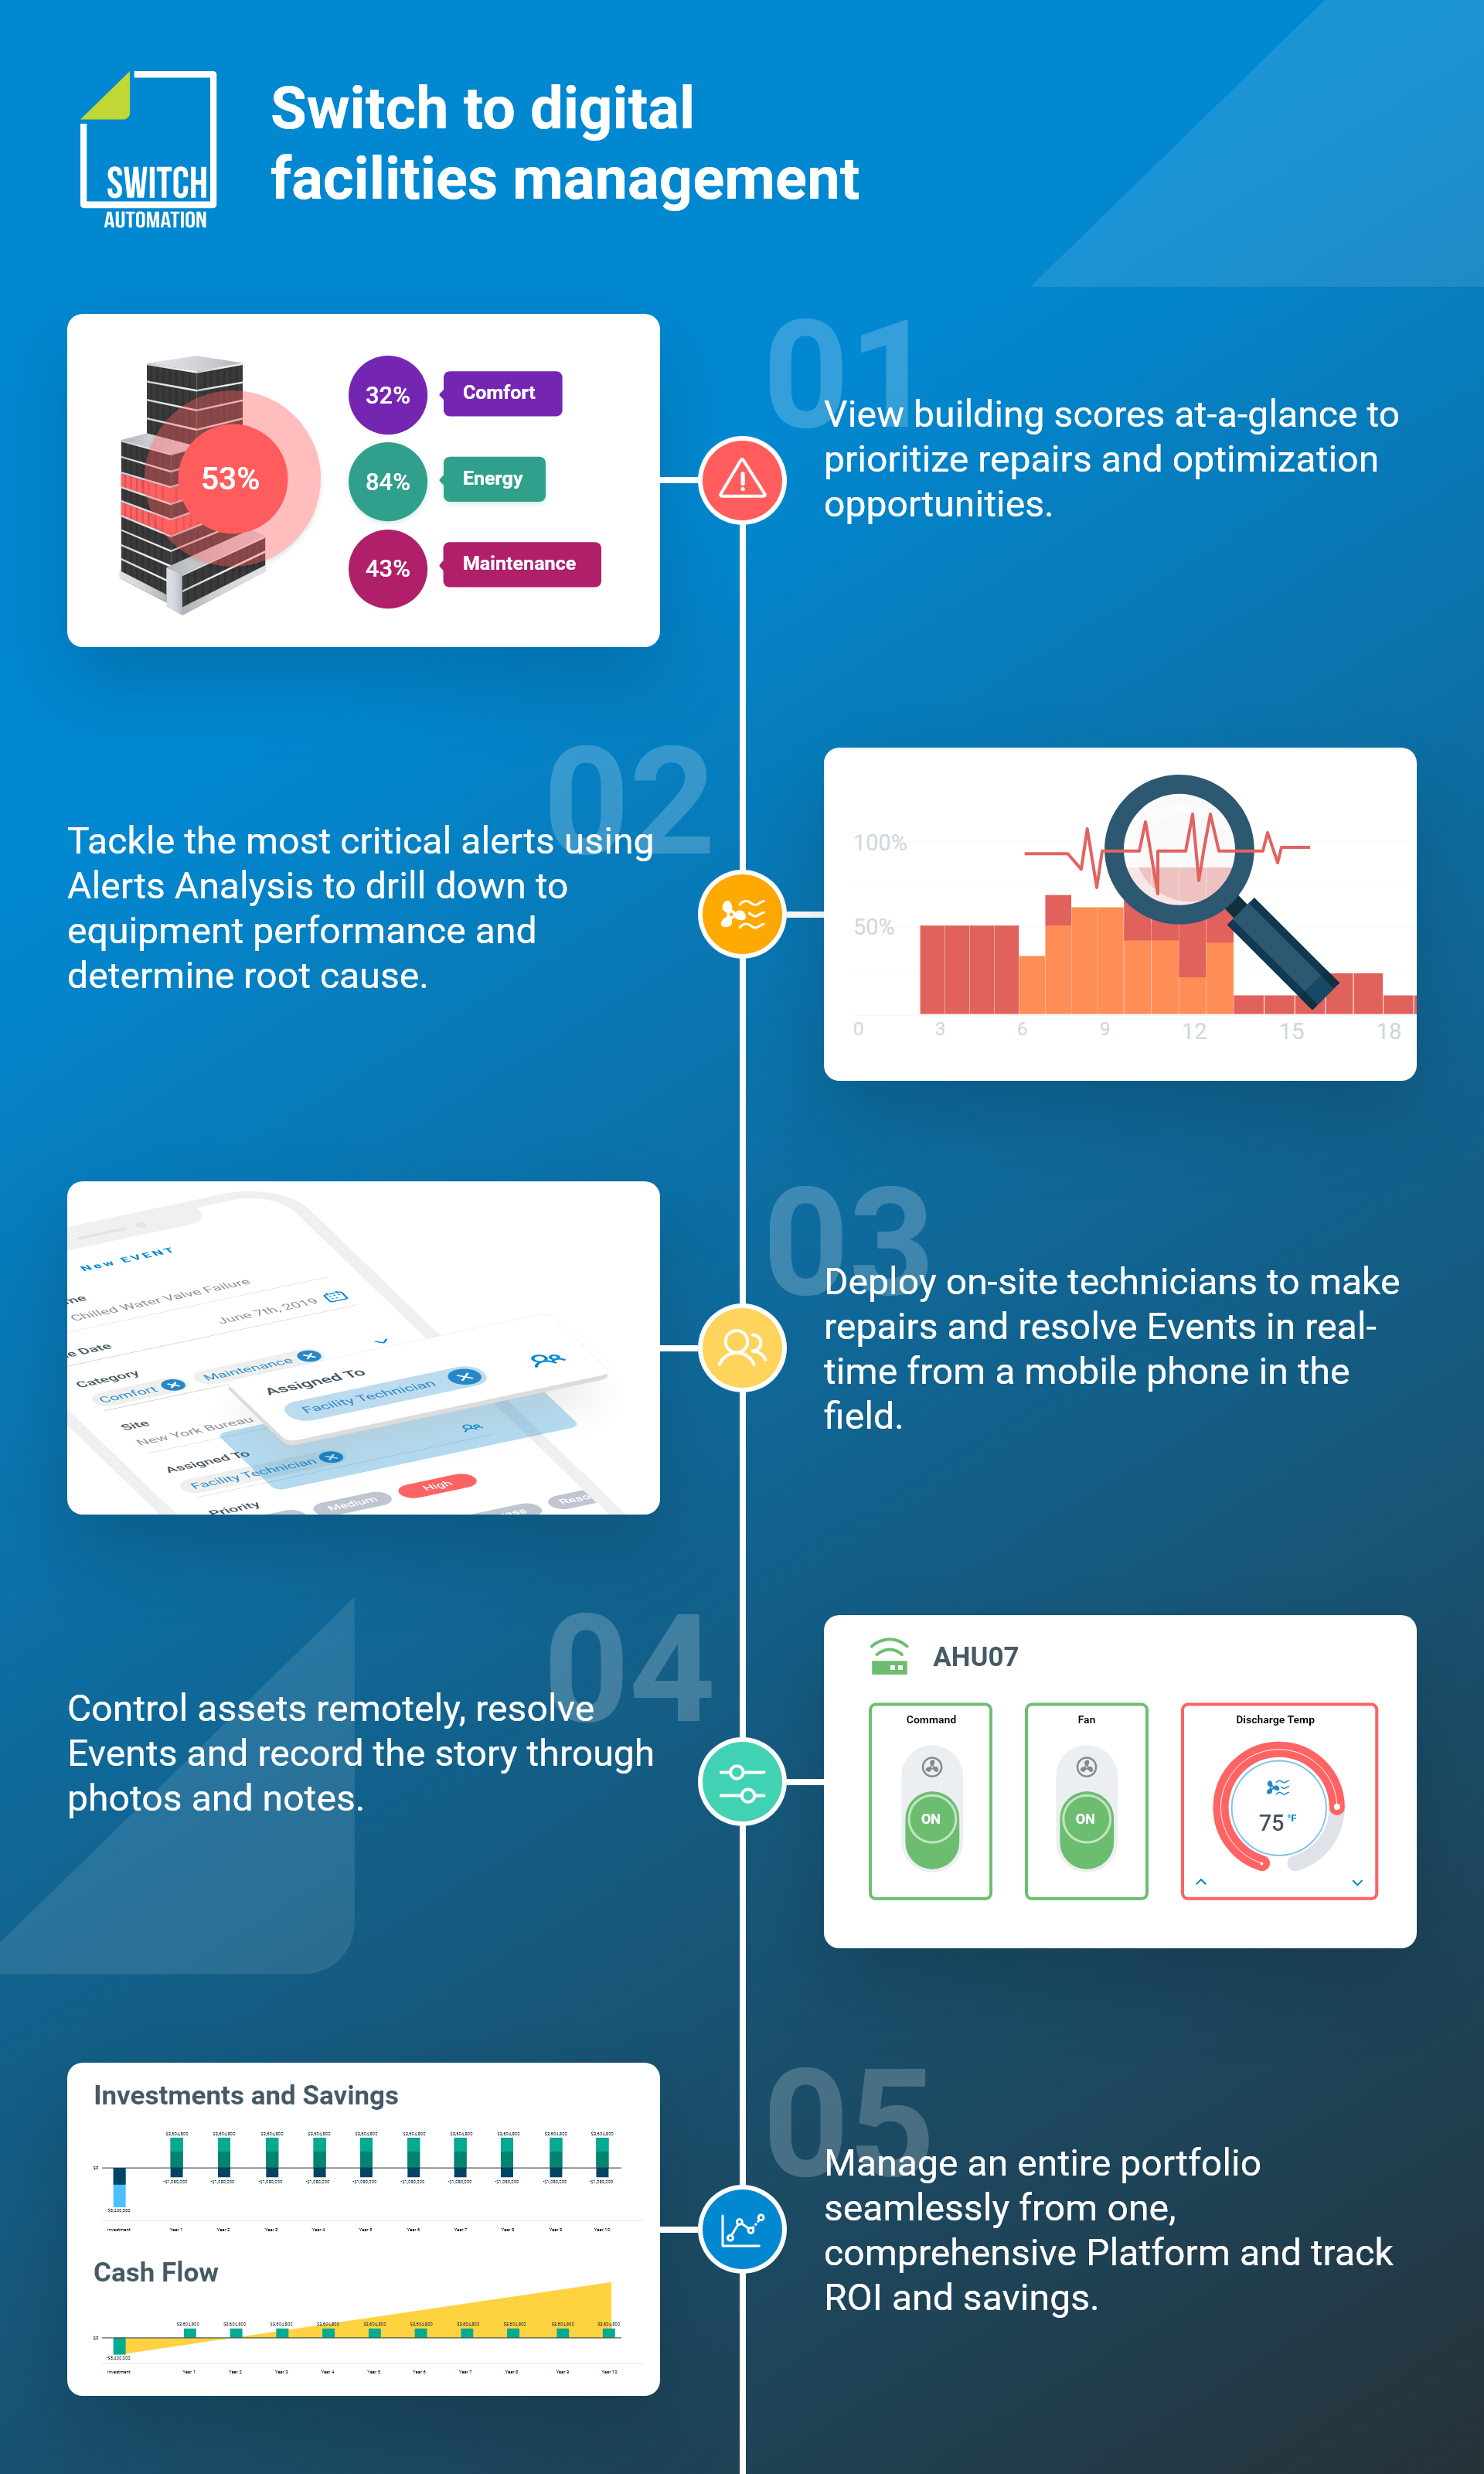 Switch to Digital FM infographic